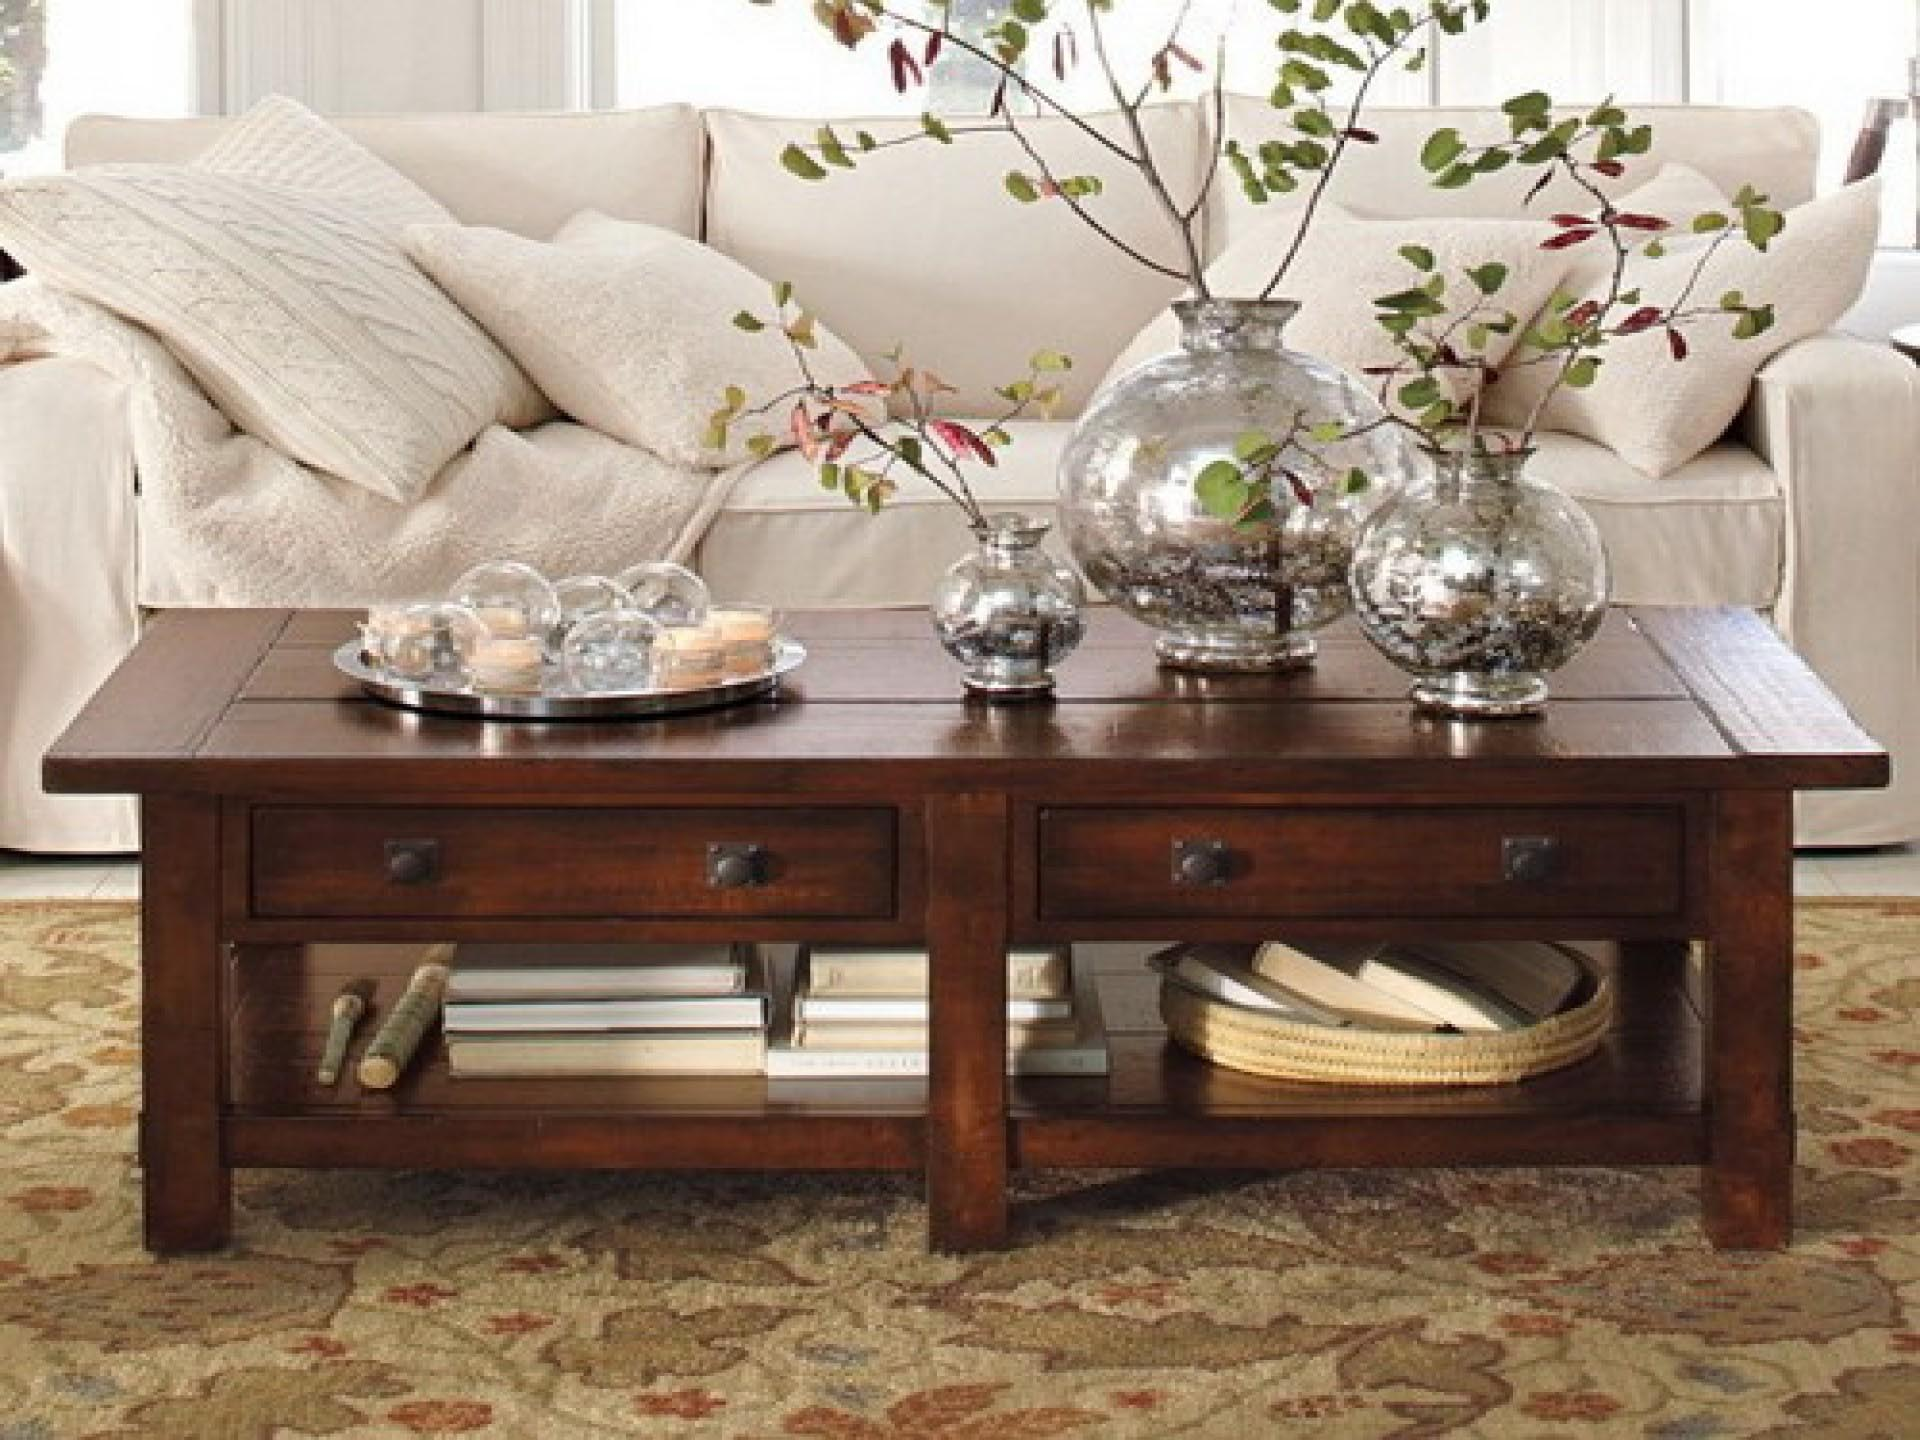 Glass coffee table accessories coffee table design ideas for Coffee table cover ideas